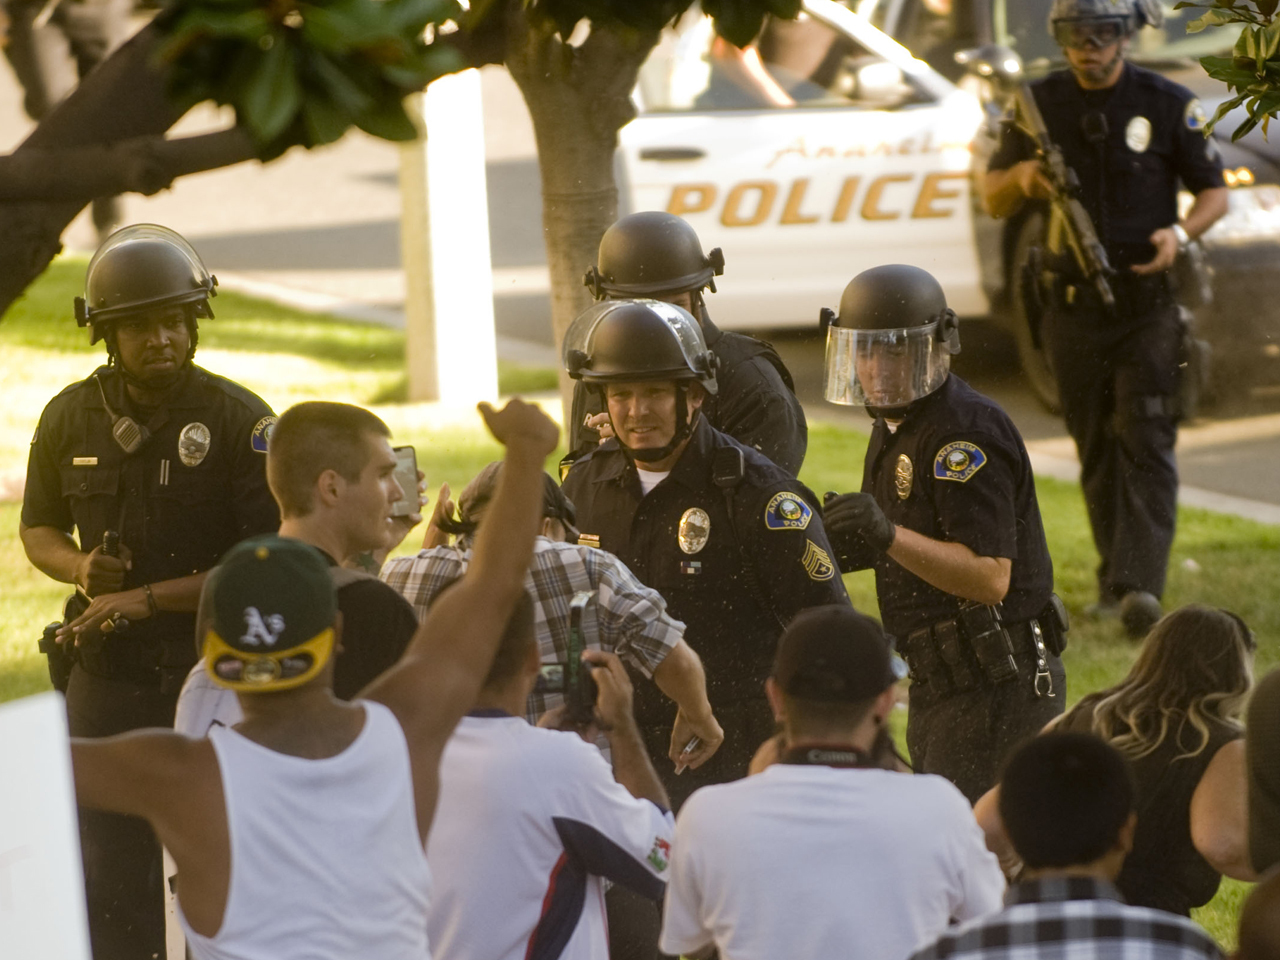 Riot police, protesters clash in Anaheim for 4th night over